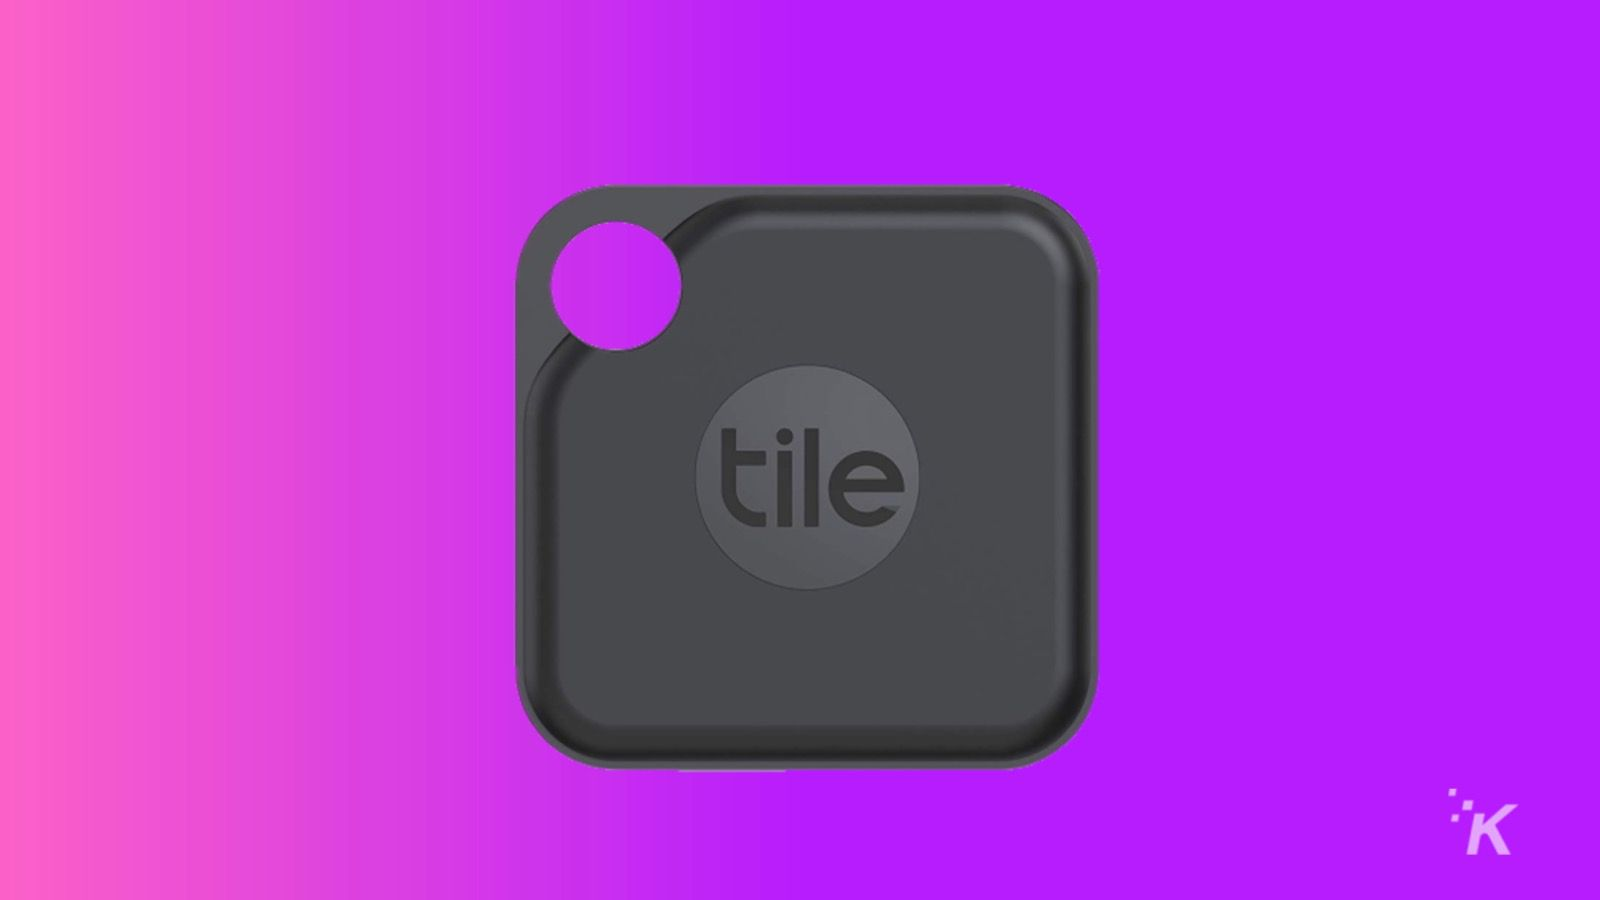 tile pro knowtechie gift guide